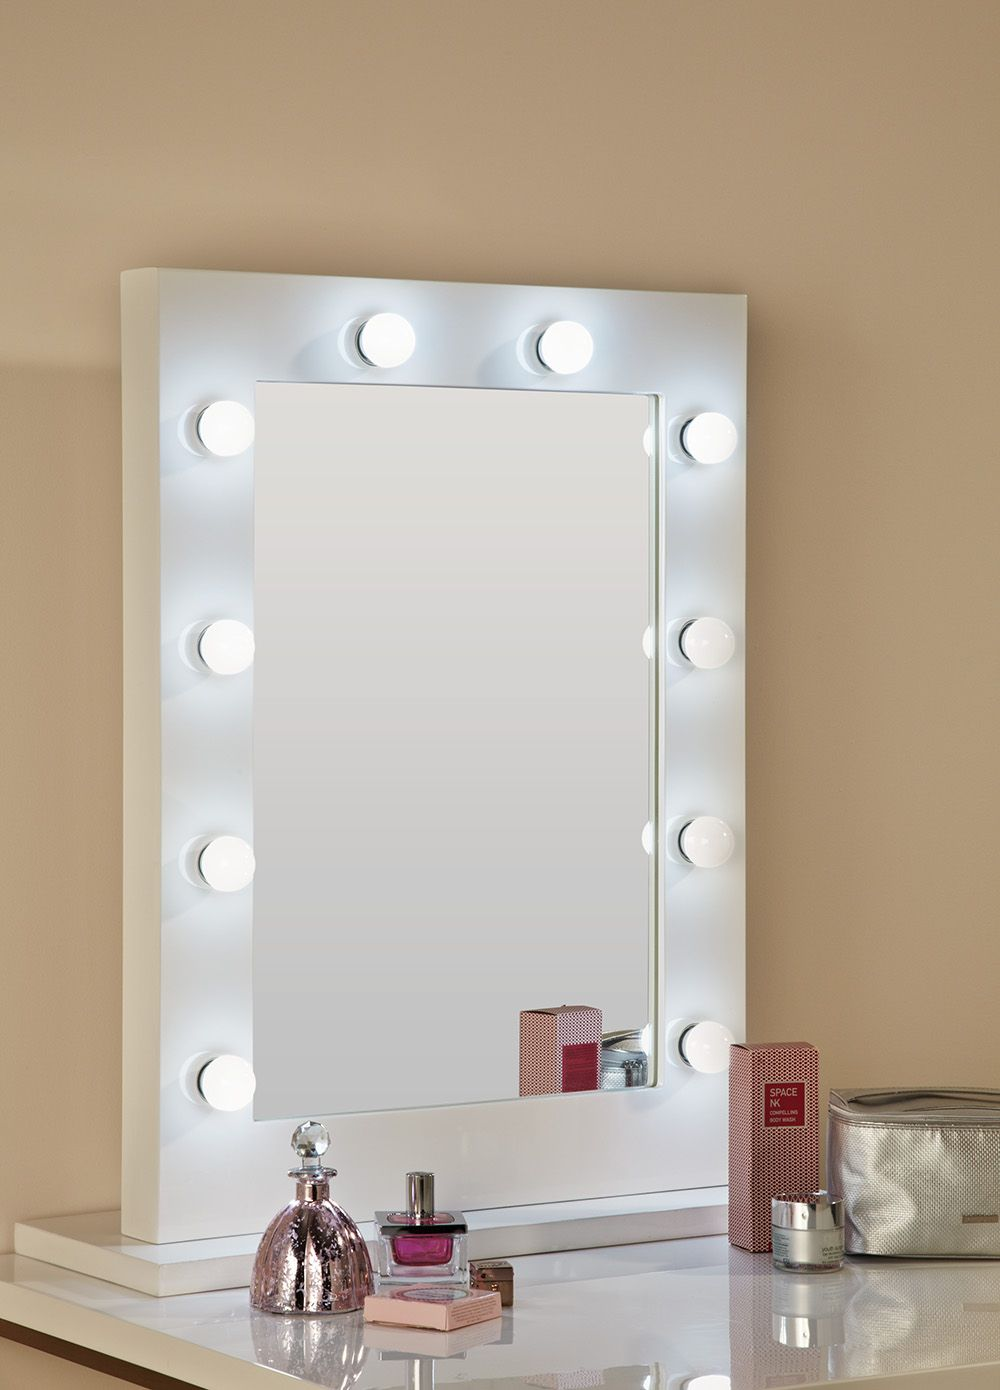 Diy vanity mirror with lights for bathroom and makeup station mozeypictures Gallery